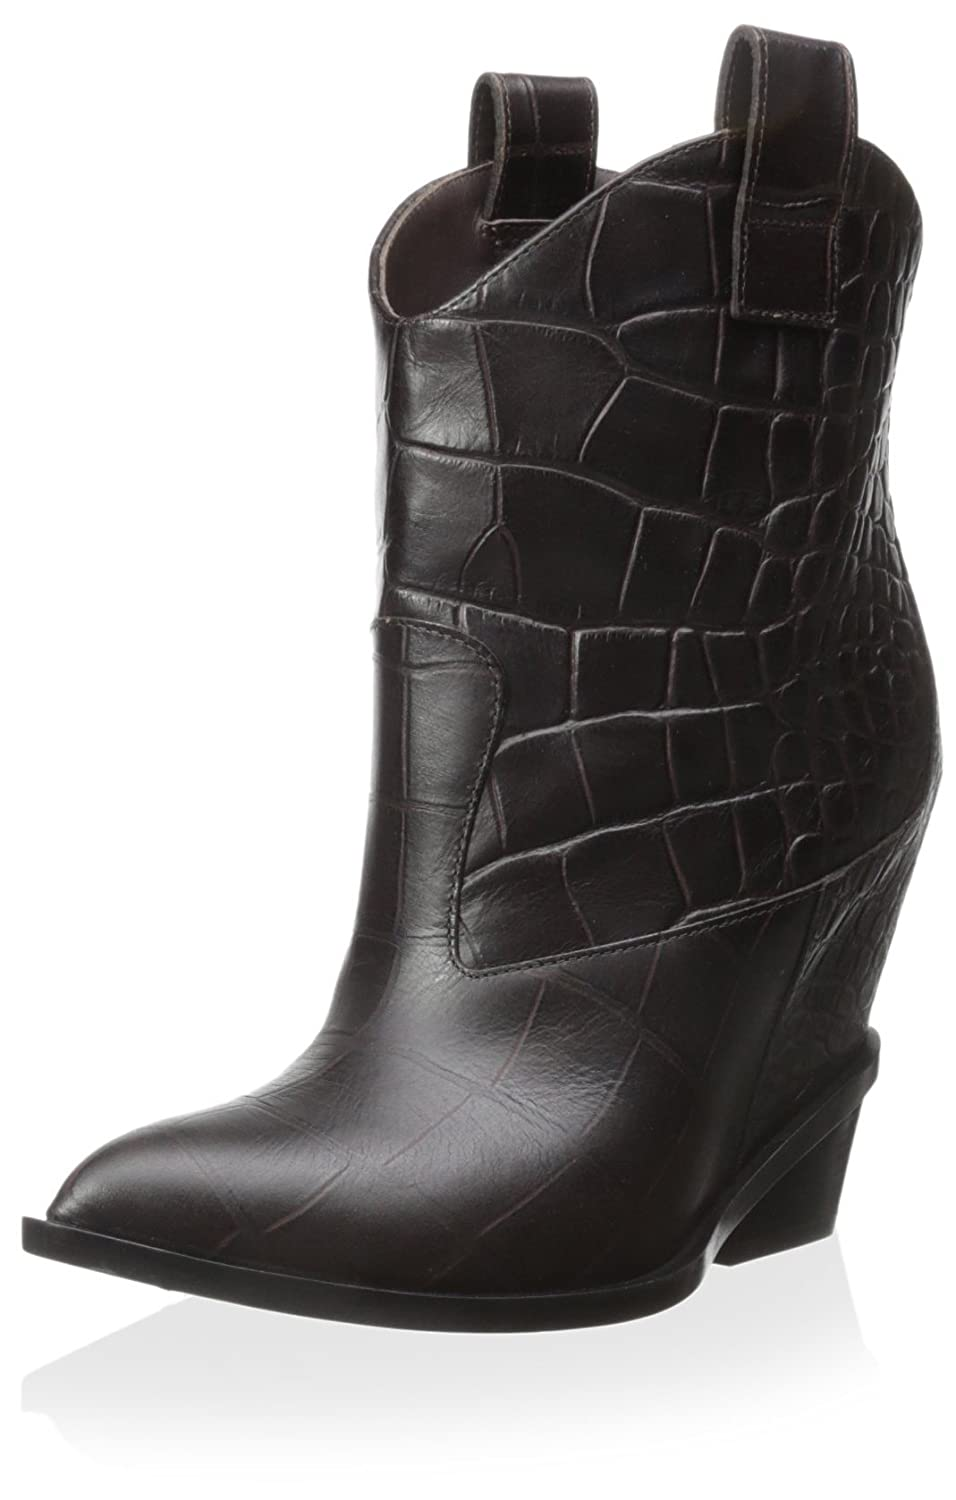 Giuseppe Zanotti Women's Leather Boot B00WQM6YCS 38 M EU/8 M US|Moro